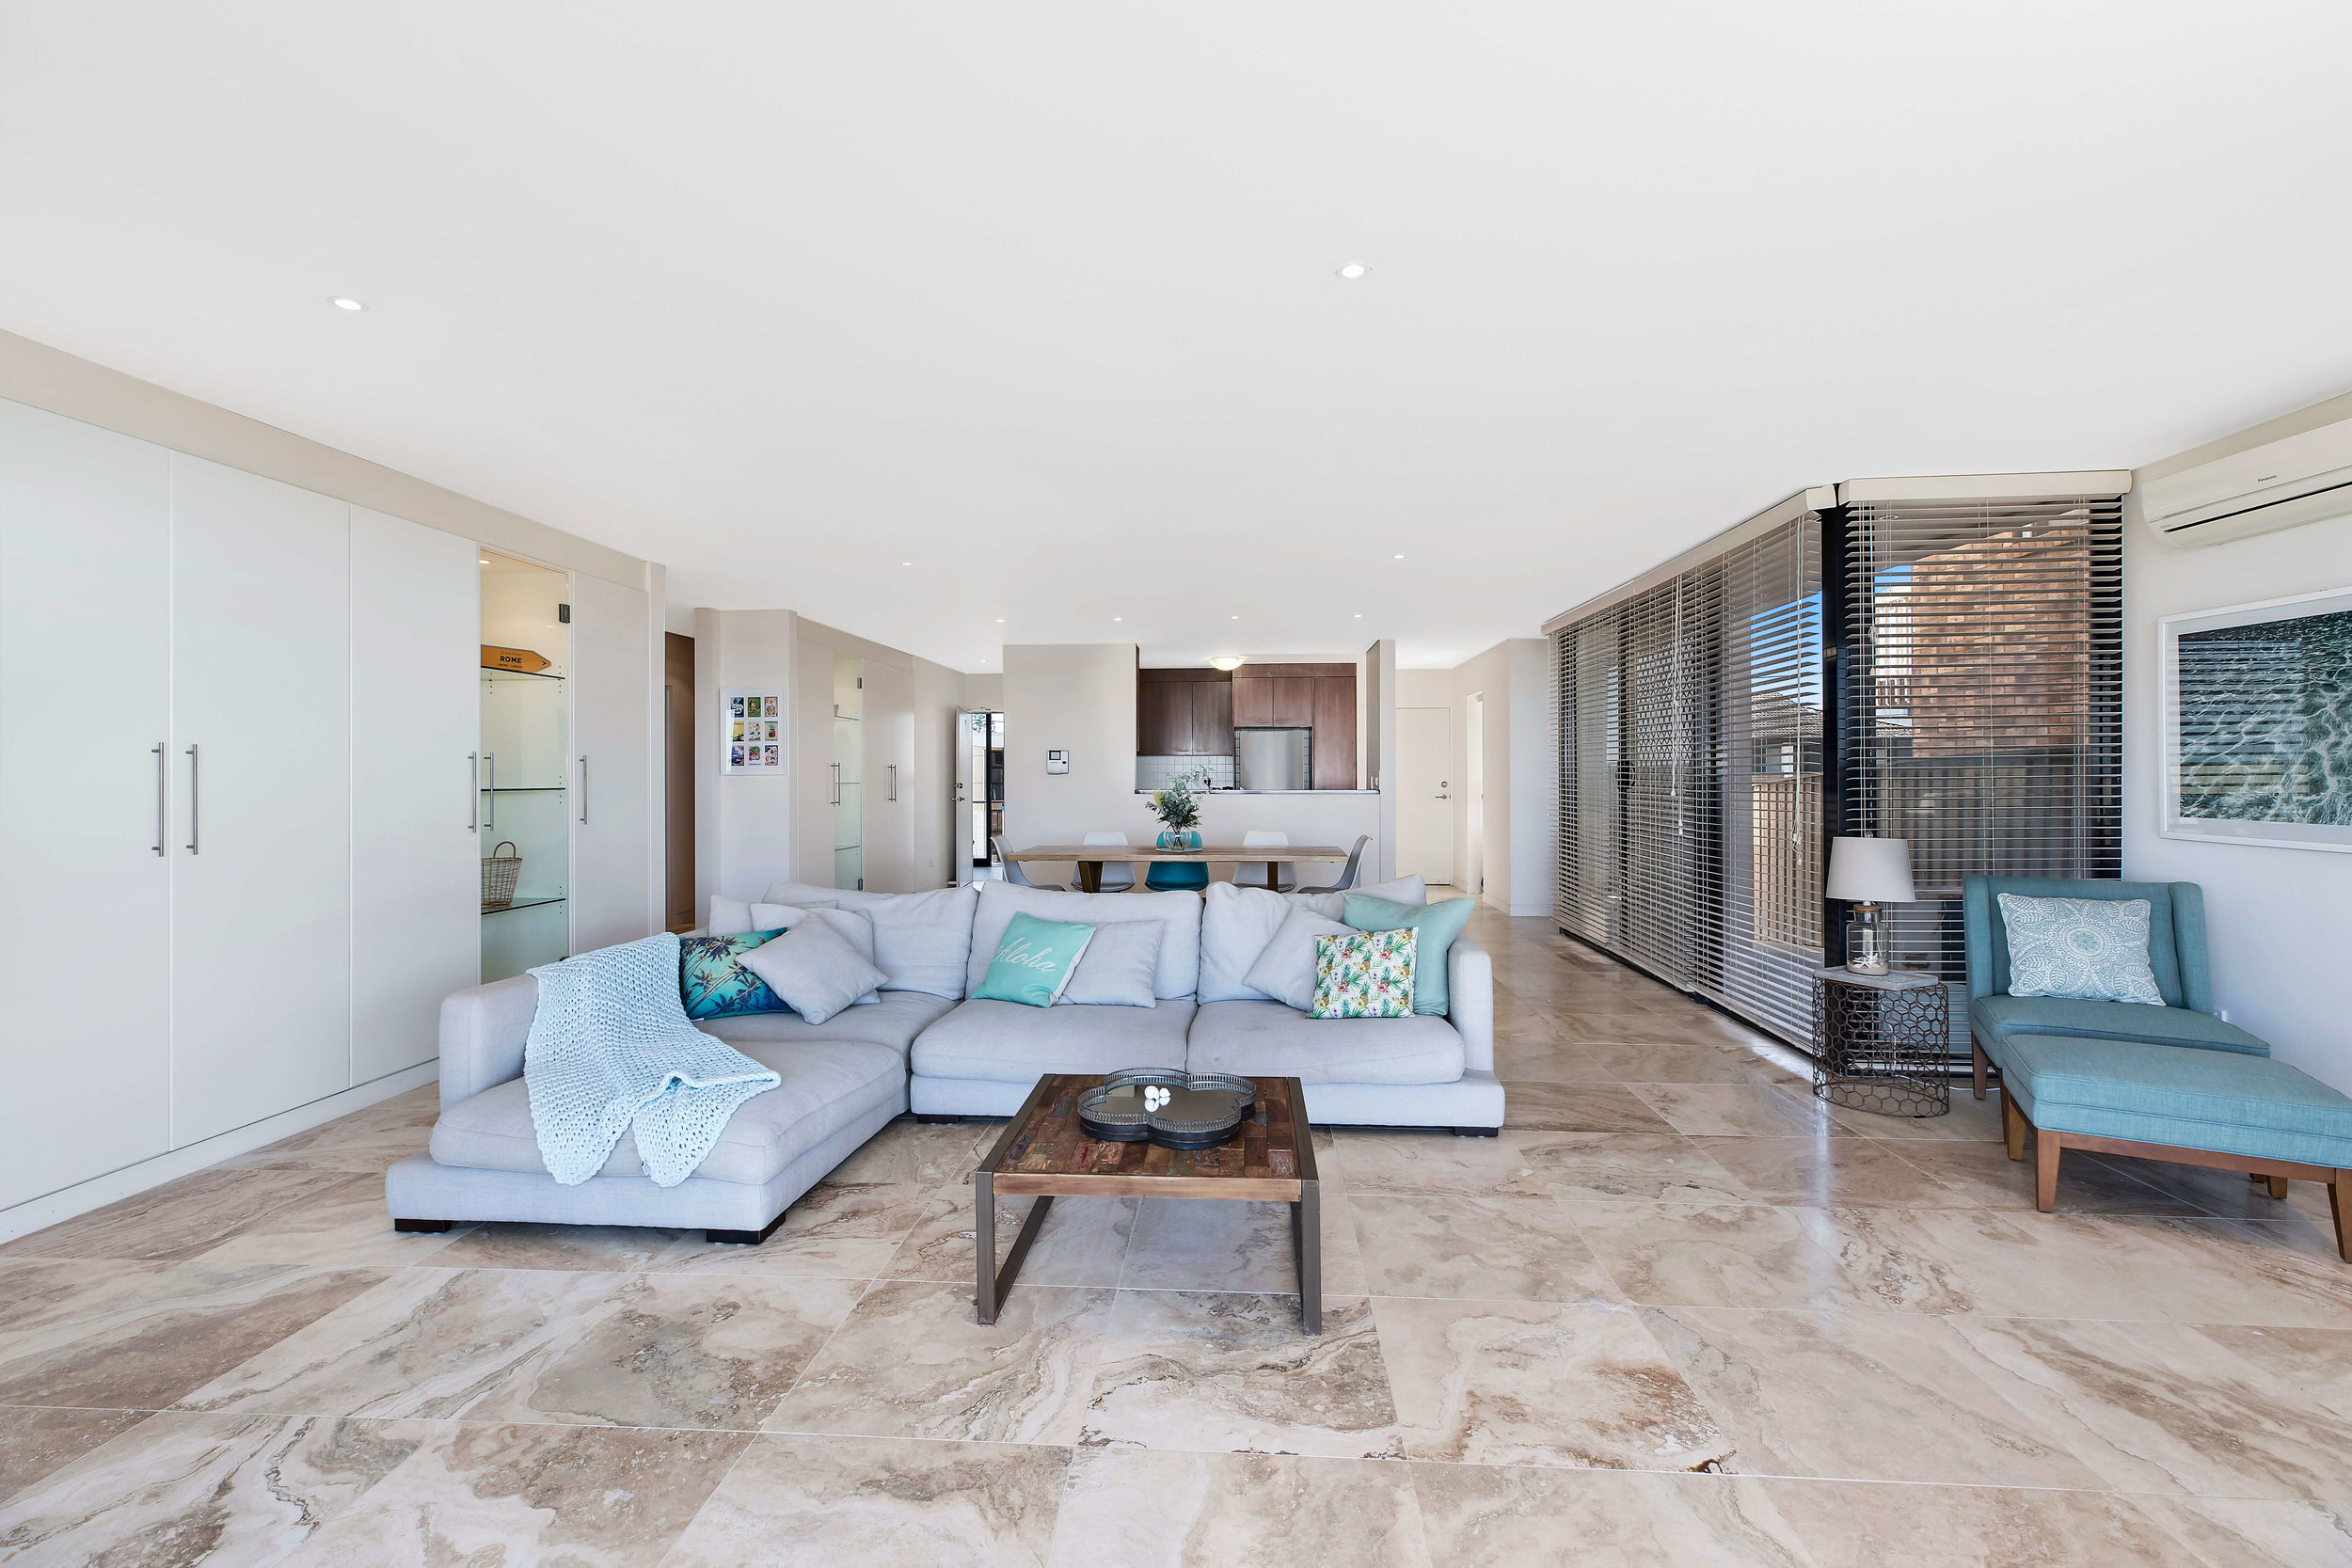 Holiday house for sale Tuggerah